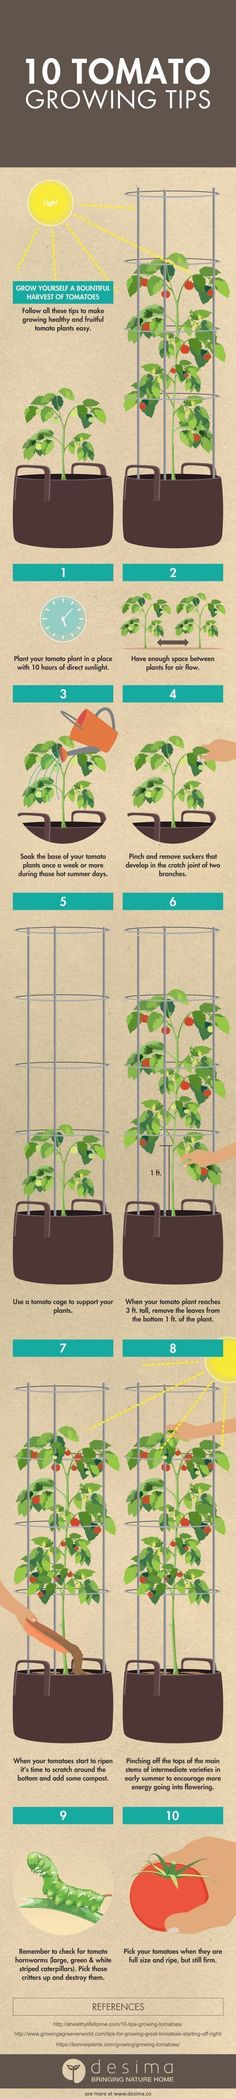 Terrace Garden - Follow all these tips to make growing healthy and fruitful tomato plants easy. 1. Plant your tomato plant in a place with 10 hours of direct sunlight. 2. Have enough space between plants for air flow. 3. Soak the base of your tomato plants once a week or more during those hot summer days. 4. Pinch and remove suckers that develop in the crotch joint of two branches. 5. Use a tomato cage to support your plants. 6. When your tomato plant reaches 3 ft. tall, remove the lea...